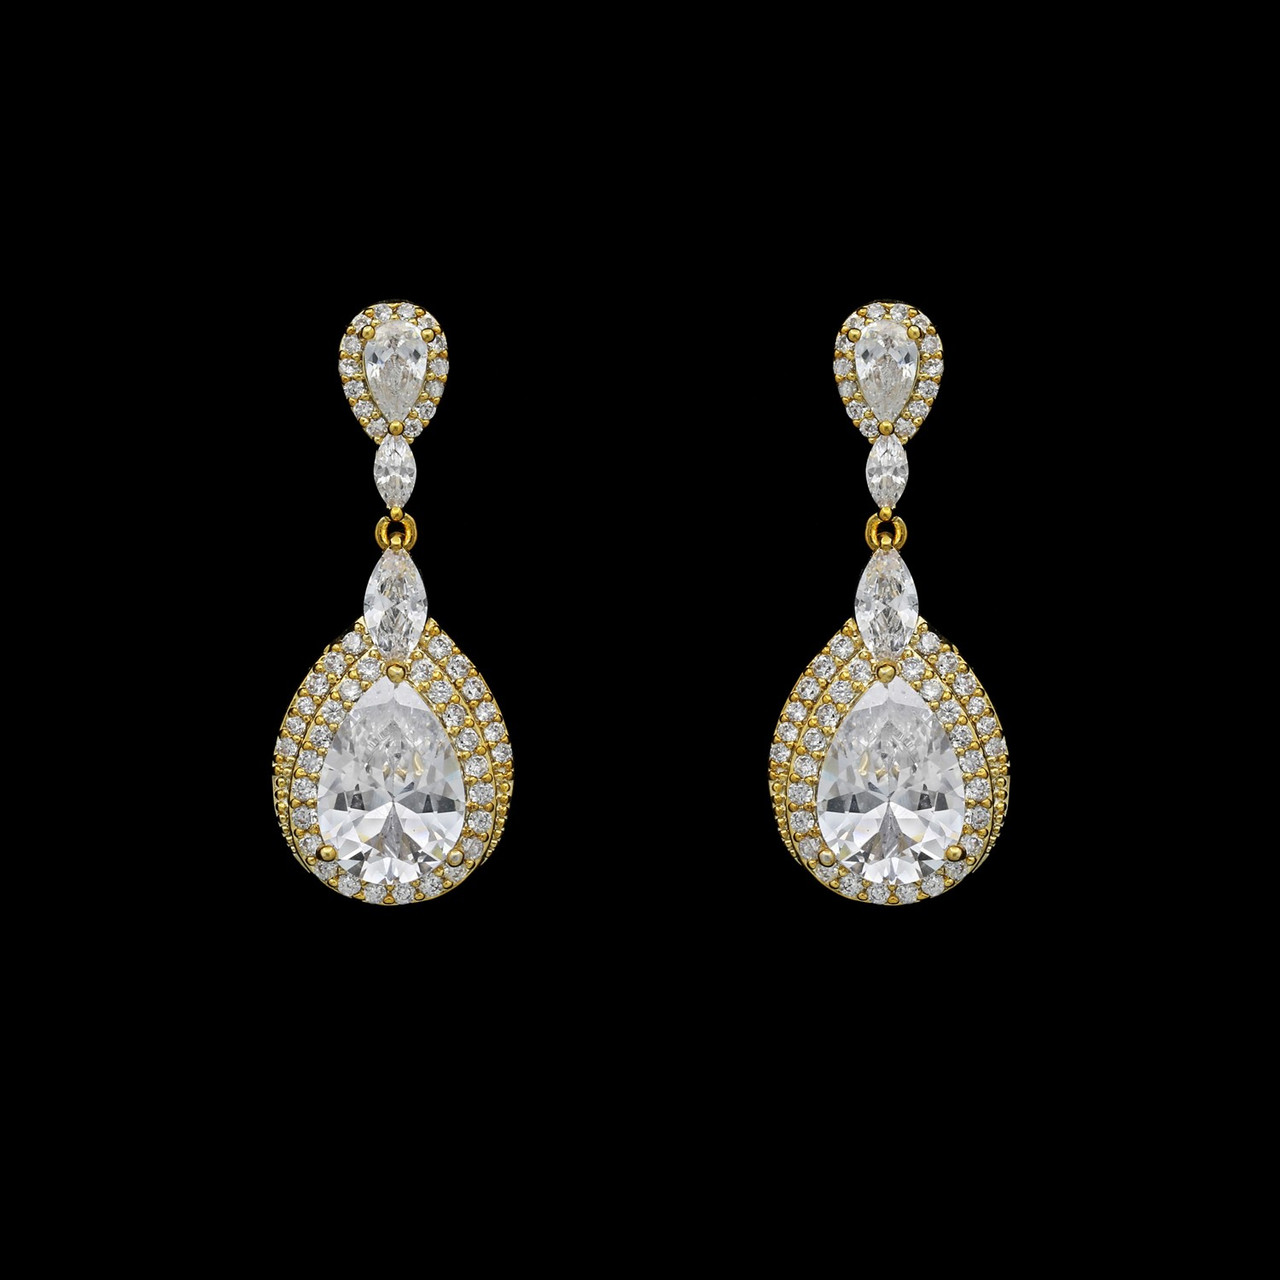 Formal Cubic Zirconia Earrings for Bridesmaids and Brides - #5175